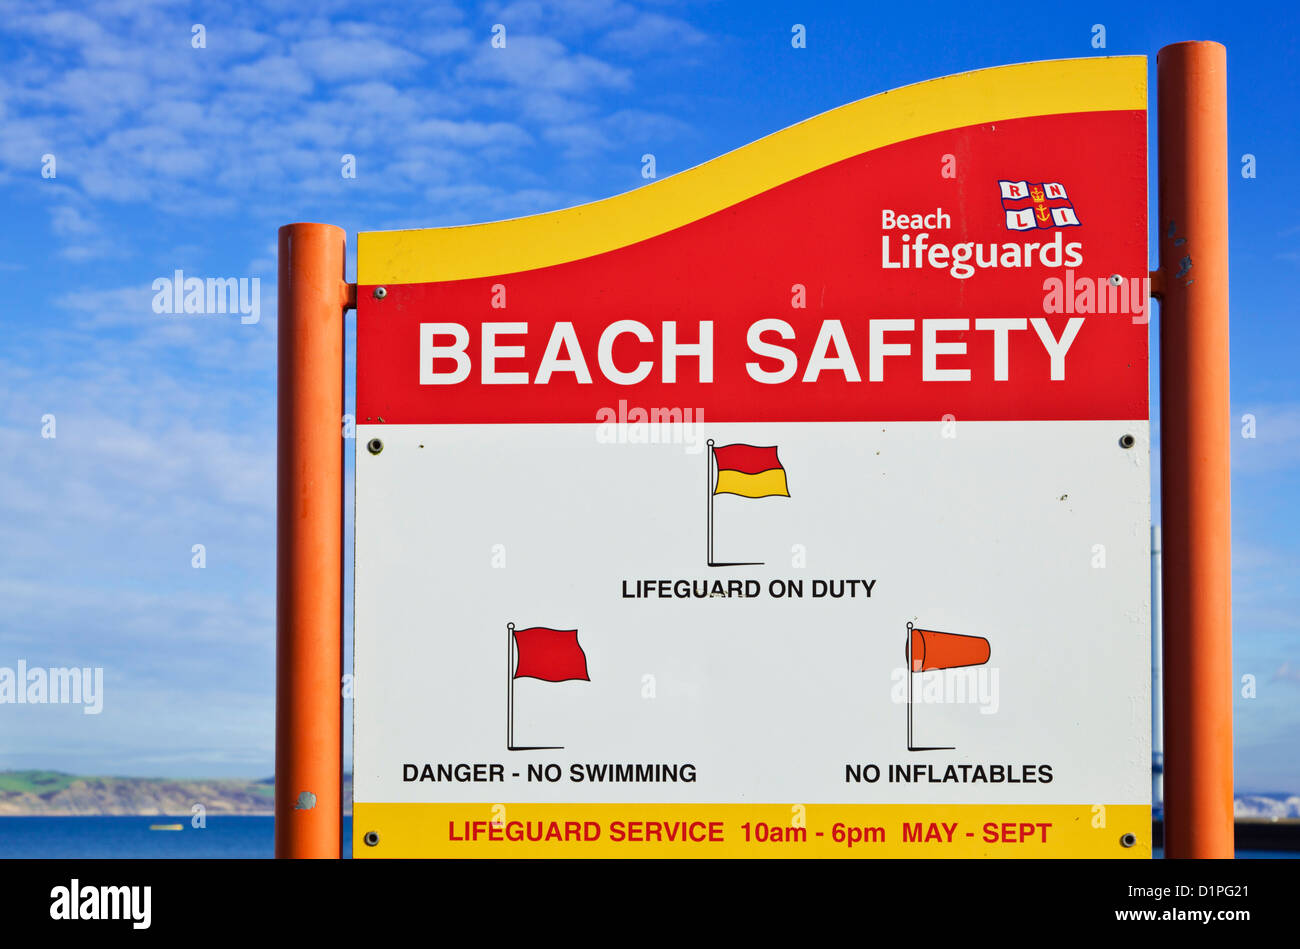 Beach safety warning rules sign Weymouth seafront Dorset England UK GB EU Europe - Stock Image